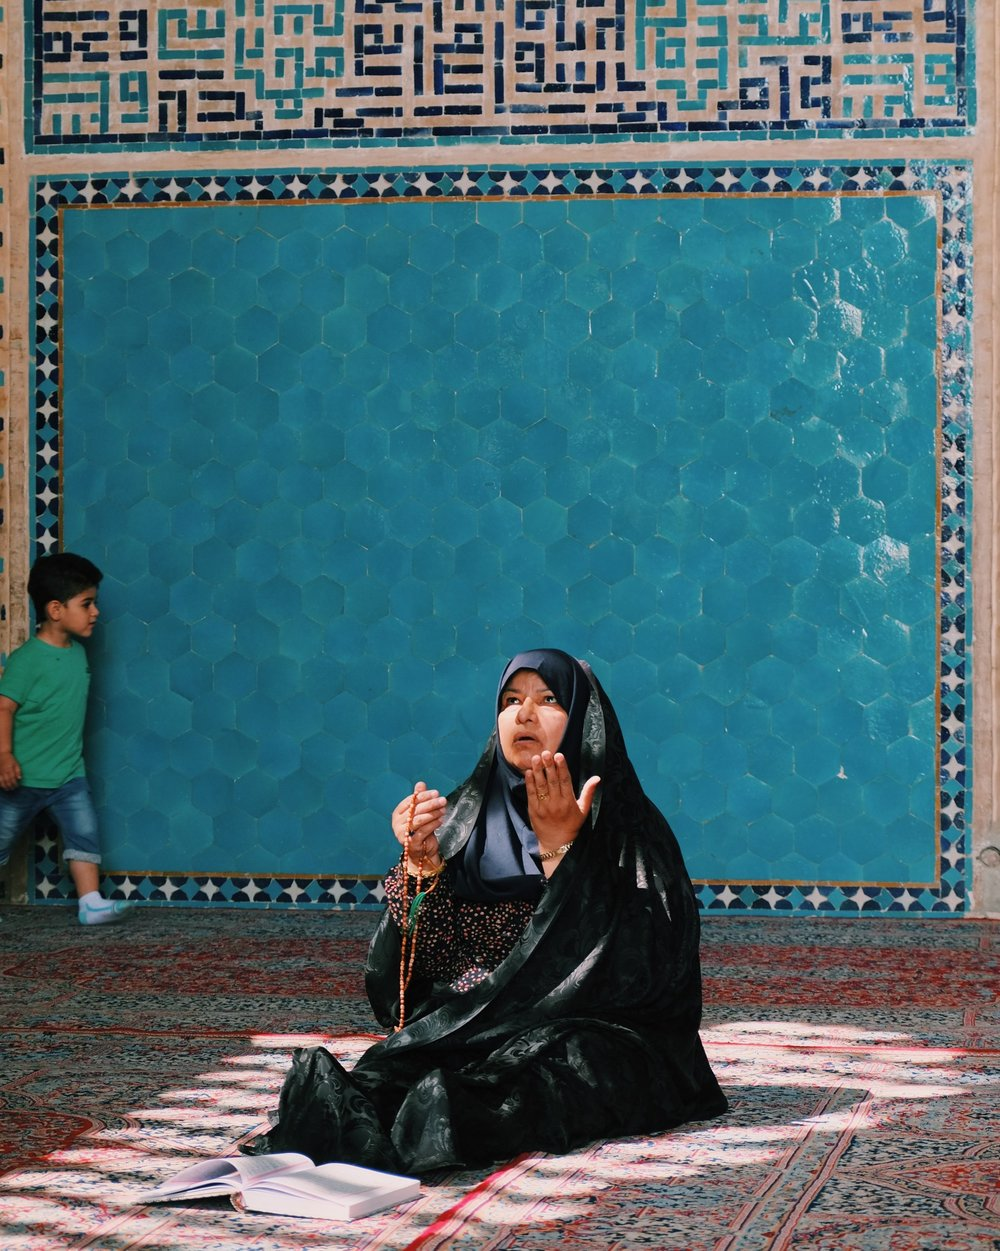 A woman prays in Yazd's mosque, a child plays in the background.jpg